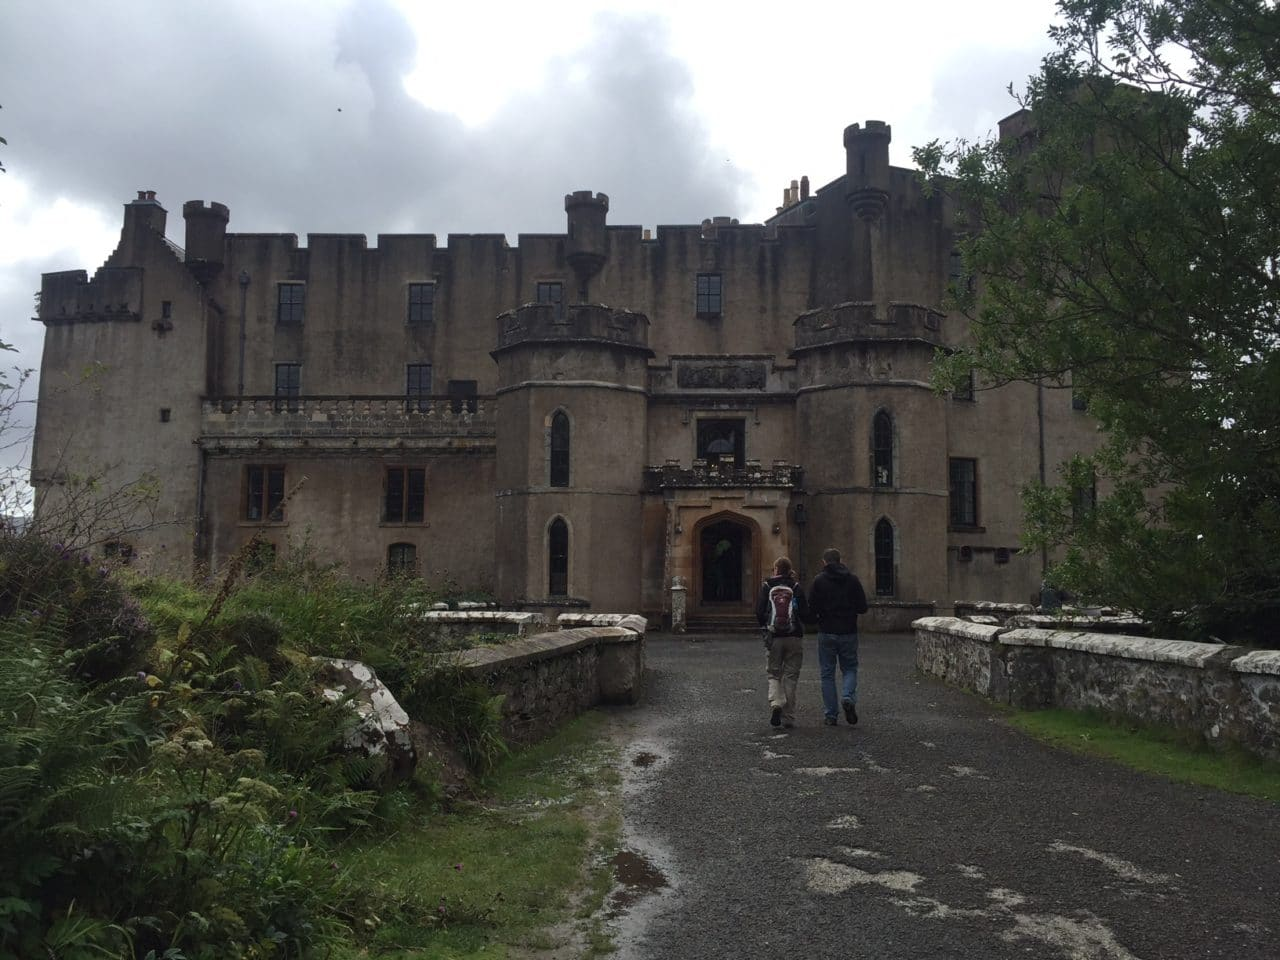 The entrance to Dunvegan Castle.